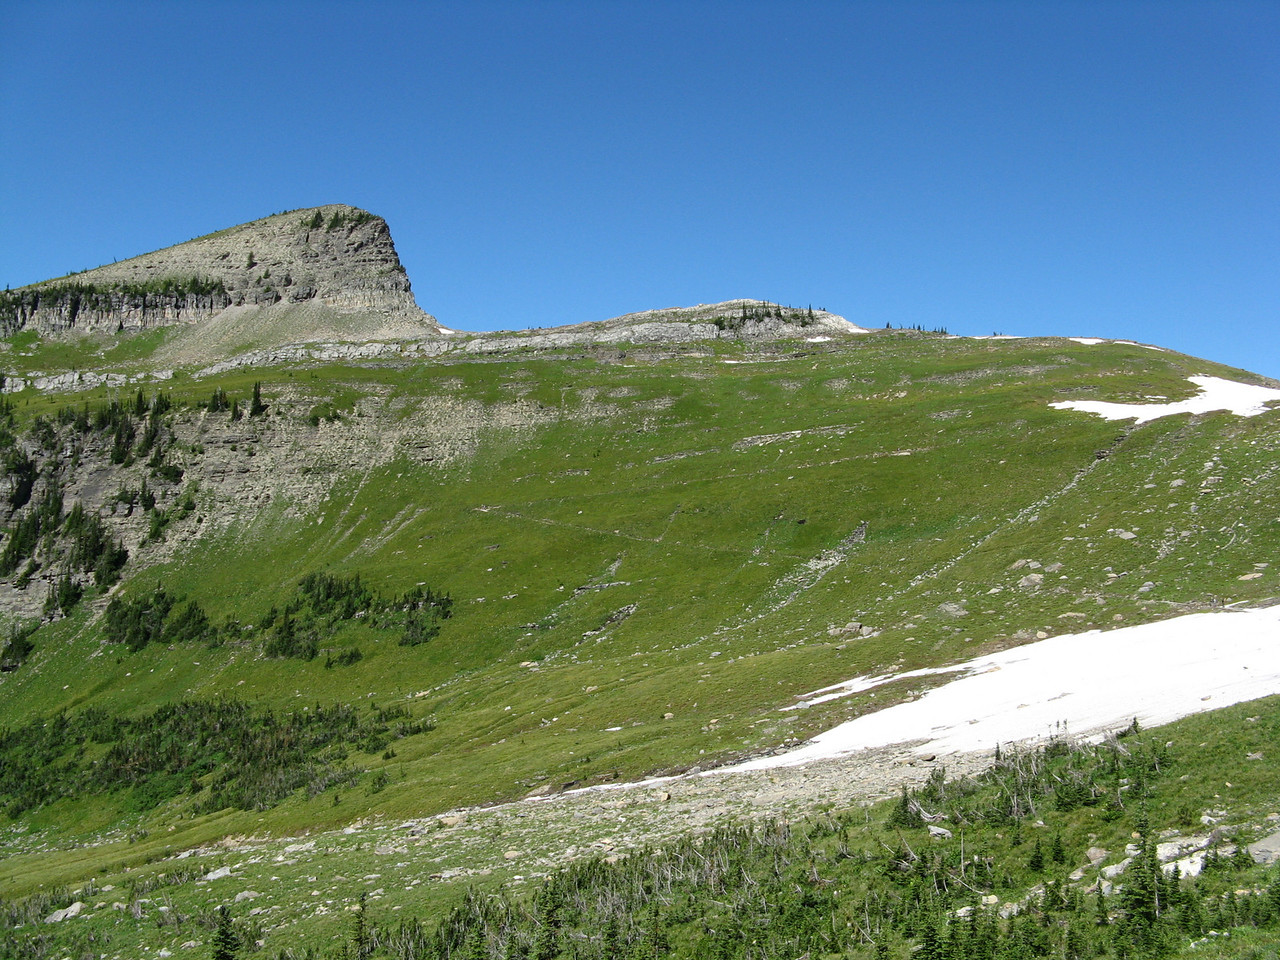 Haystack Butte from the trail.  The trail can be seen where it angles up the slope from the right to left center of the picture, then switches back to the snow field on the right upper part of the picture.